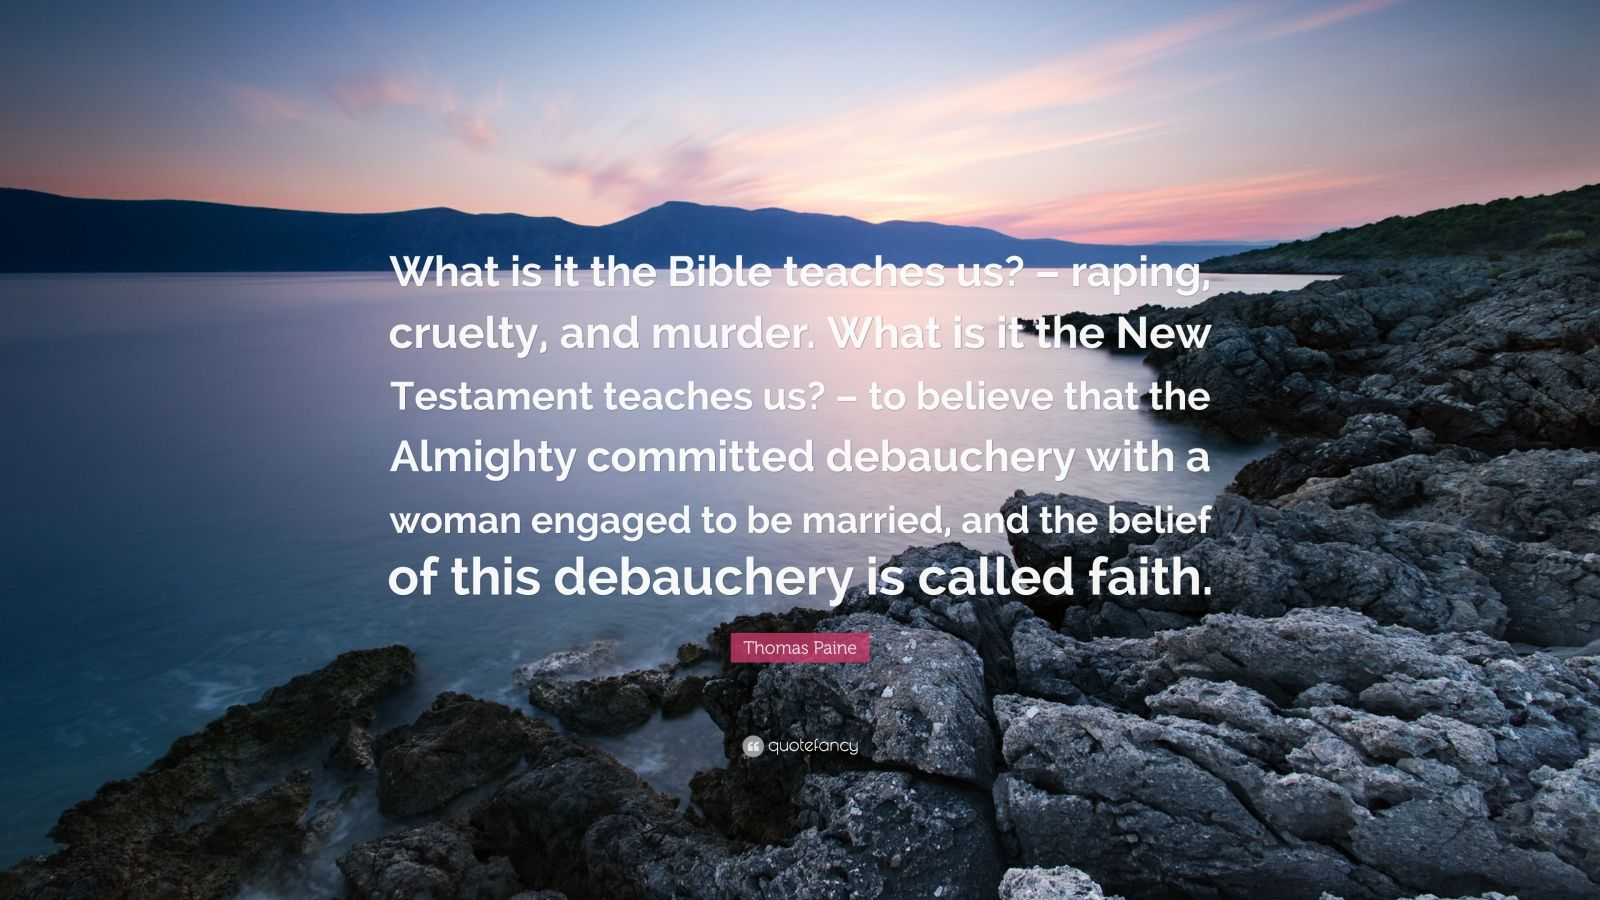 "Thomas Paine Quote: ""What is it the Bible teaches us? – raping, cruelty, and murder. What is it the New Testament teaches us? – to believe that the Almighty committed debauchery with a woman engaged to be married, and the belief of this debauchery is called faith."""